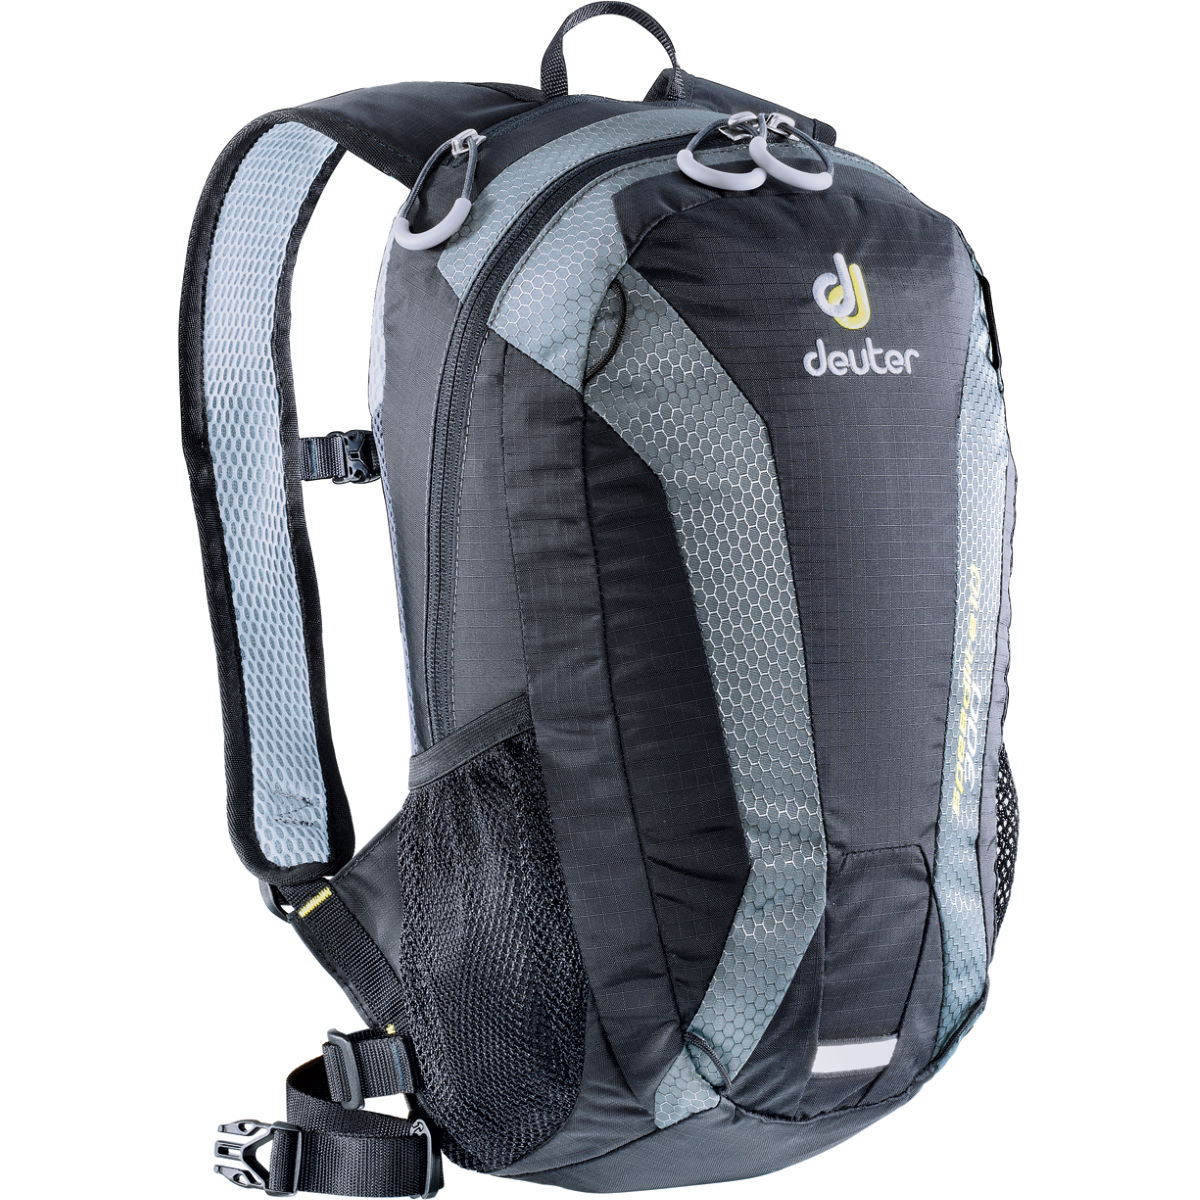 Deuter Speed Lite 10L Rucksack - Hydration Compatible